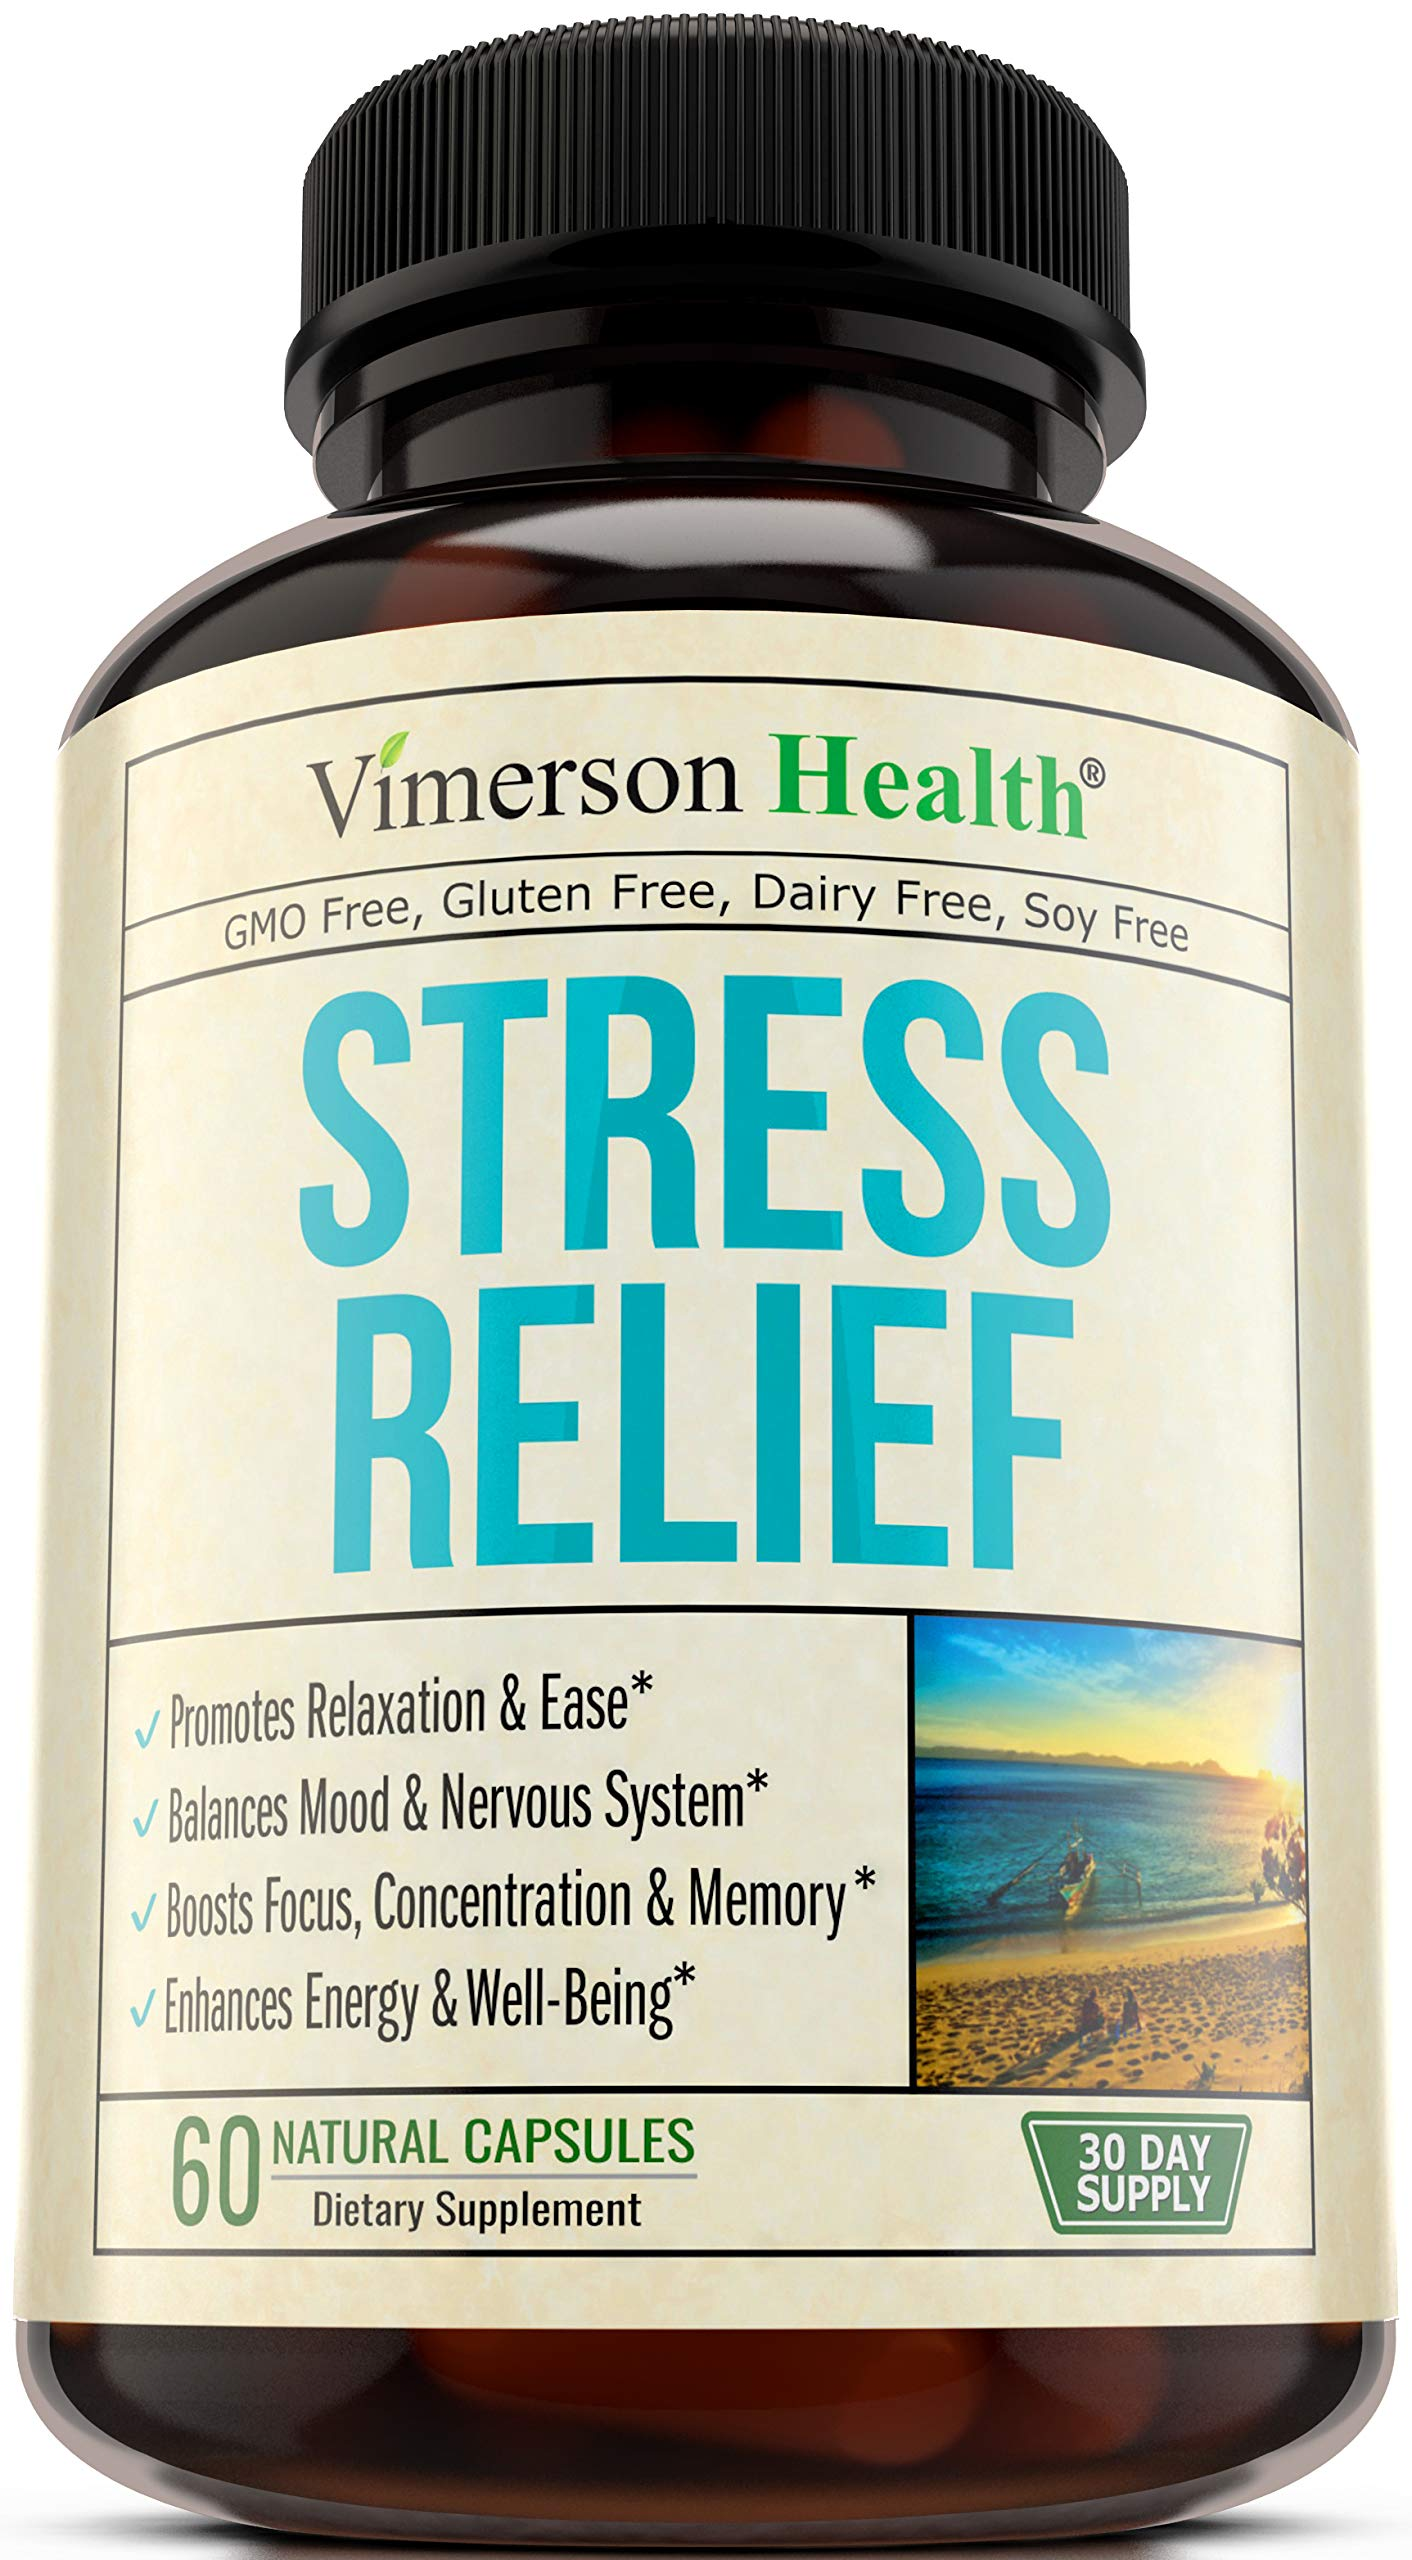 Stress Relief & Mood Enhancer Supplement - Relief from Occasional Anxiety, with Biotin, 5-HTP, Valerian, Lutein, Vitamin B1 B2 B5 B6, L-Theanine, St. John's Wort, Ashwagandha, Chamomile. Niacin, GABA